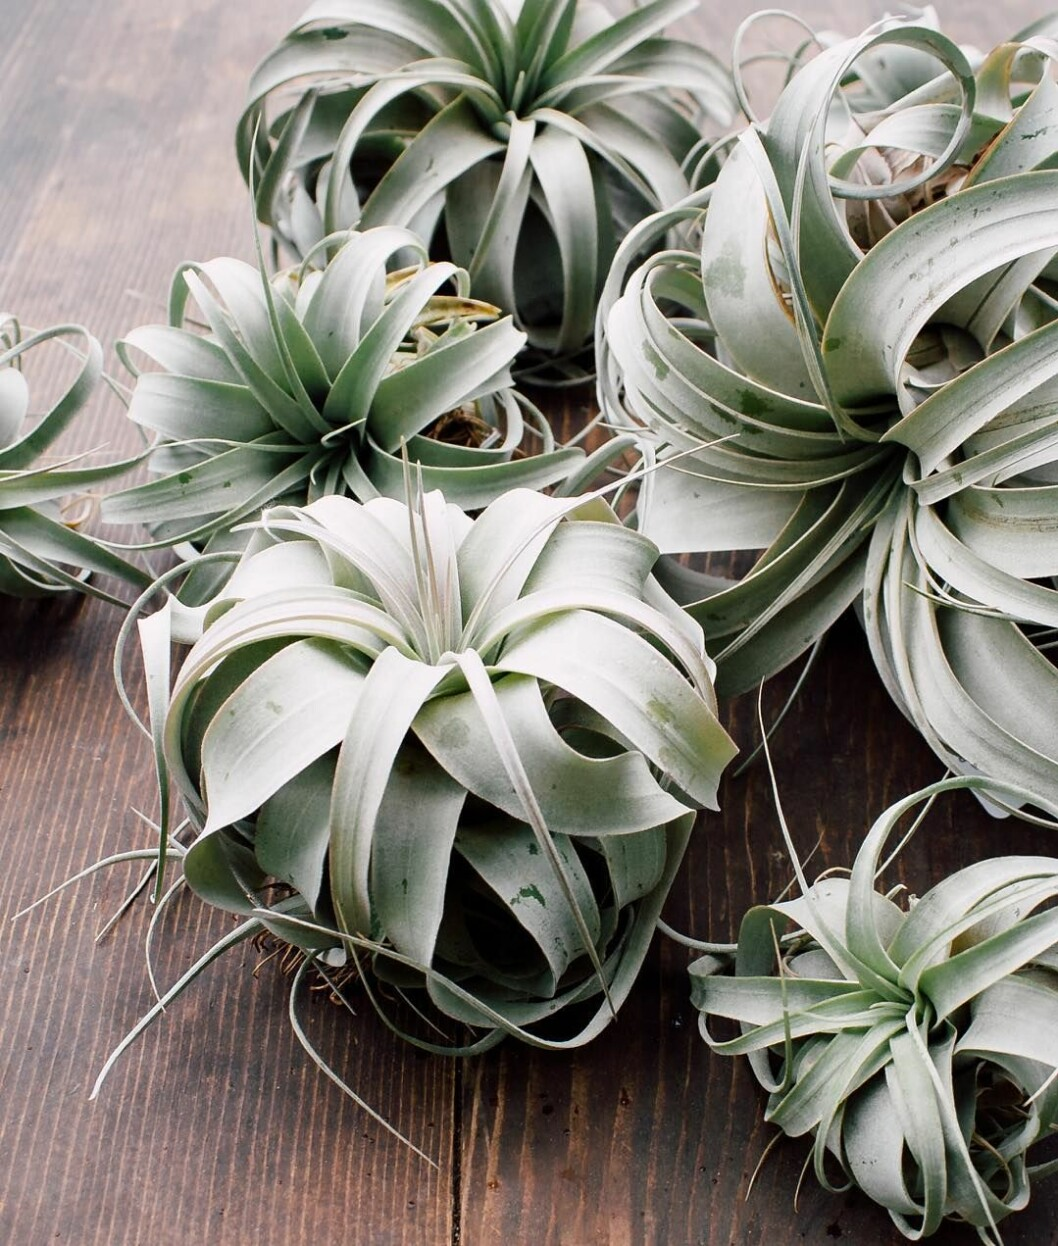 01. airplants